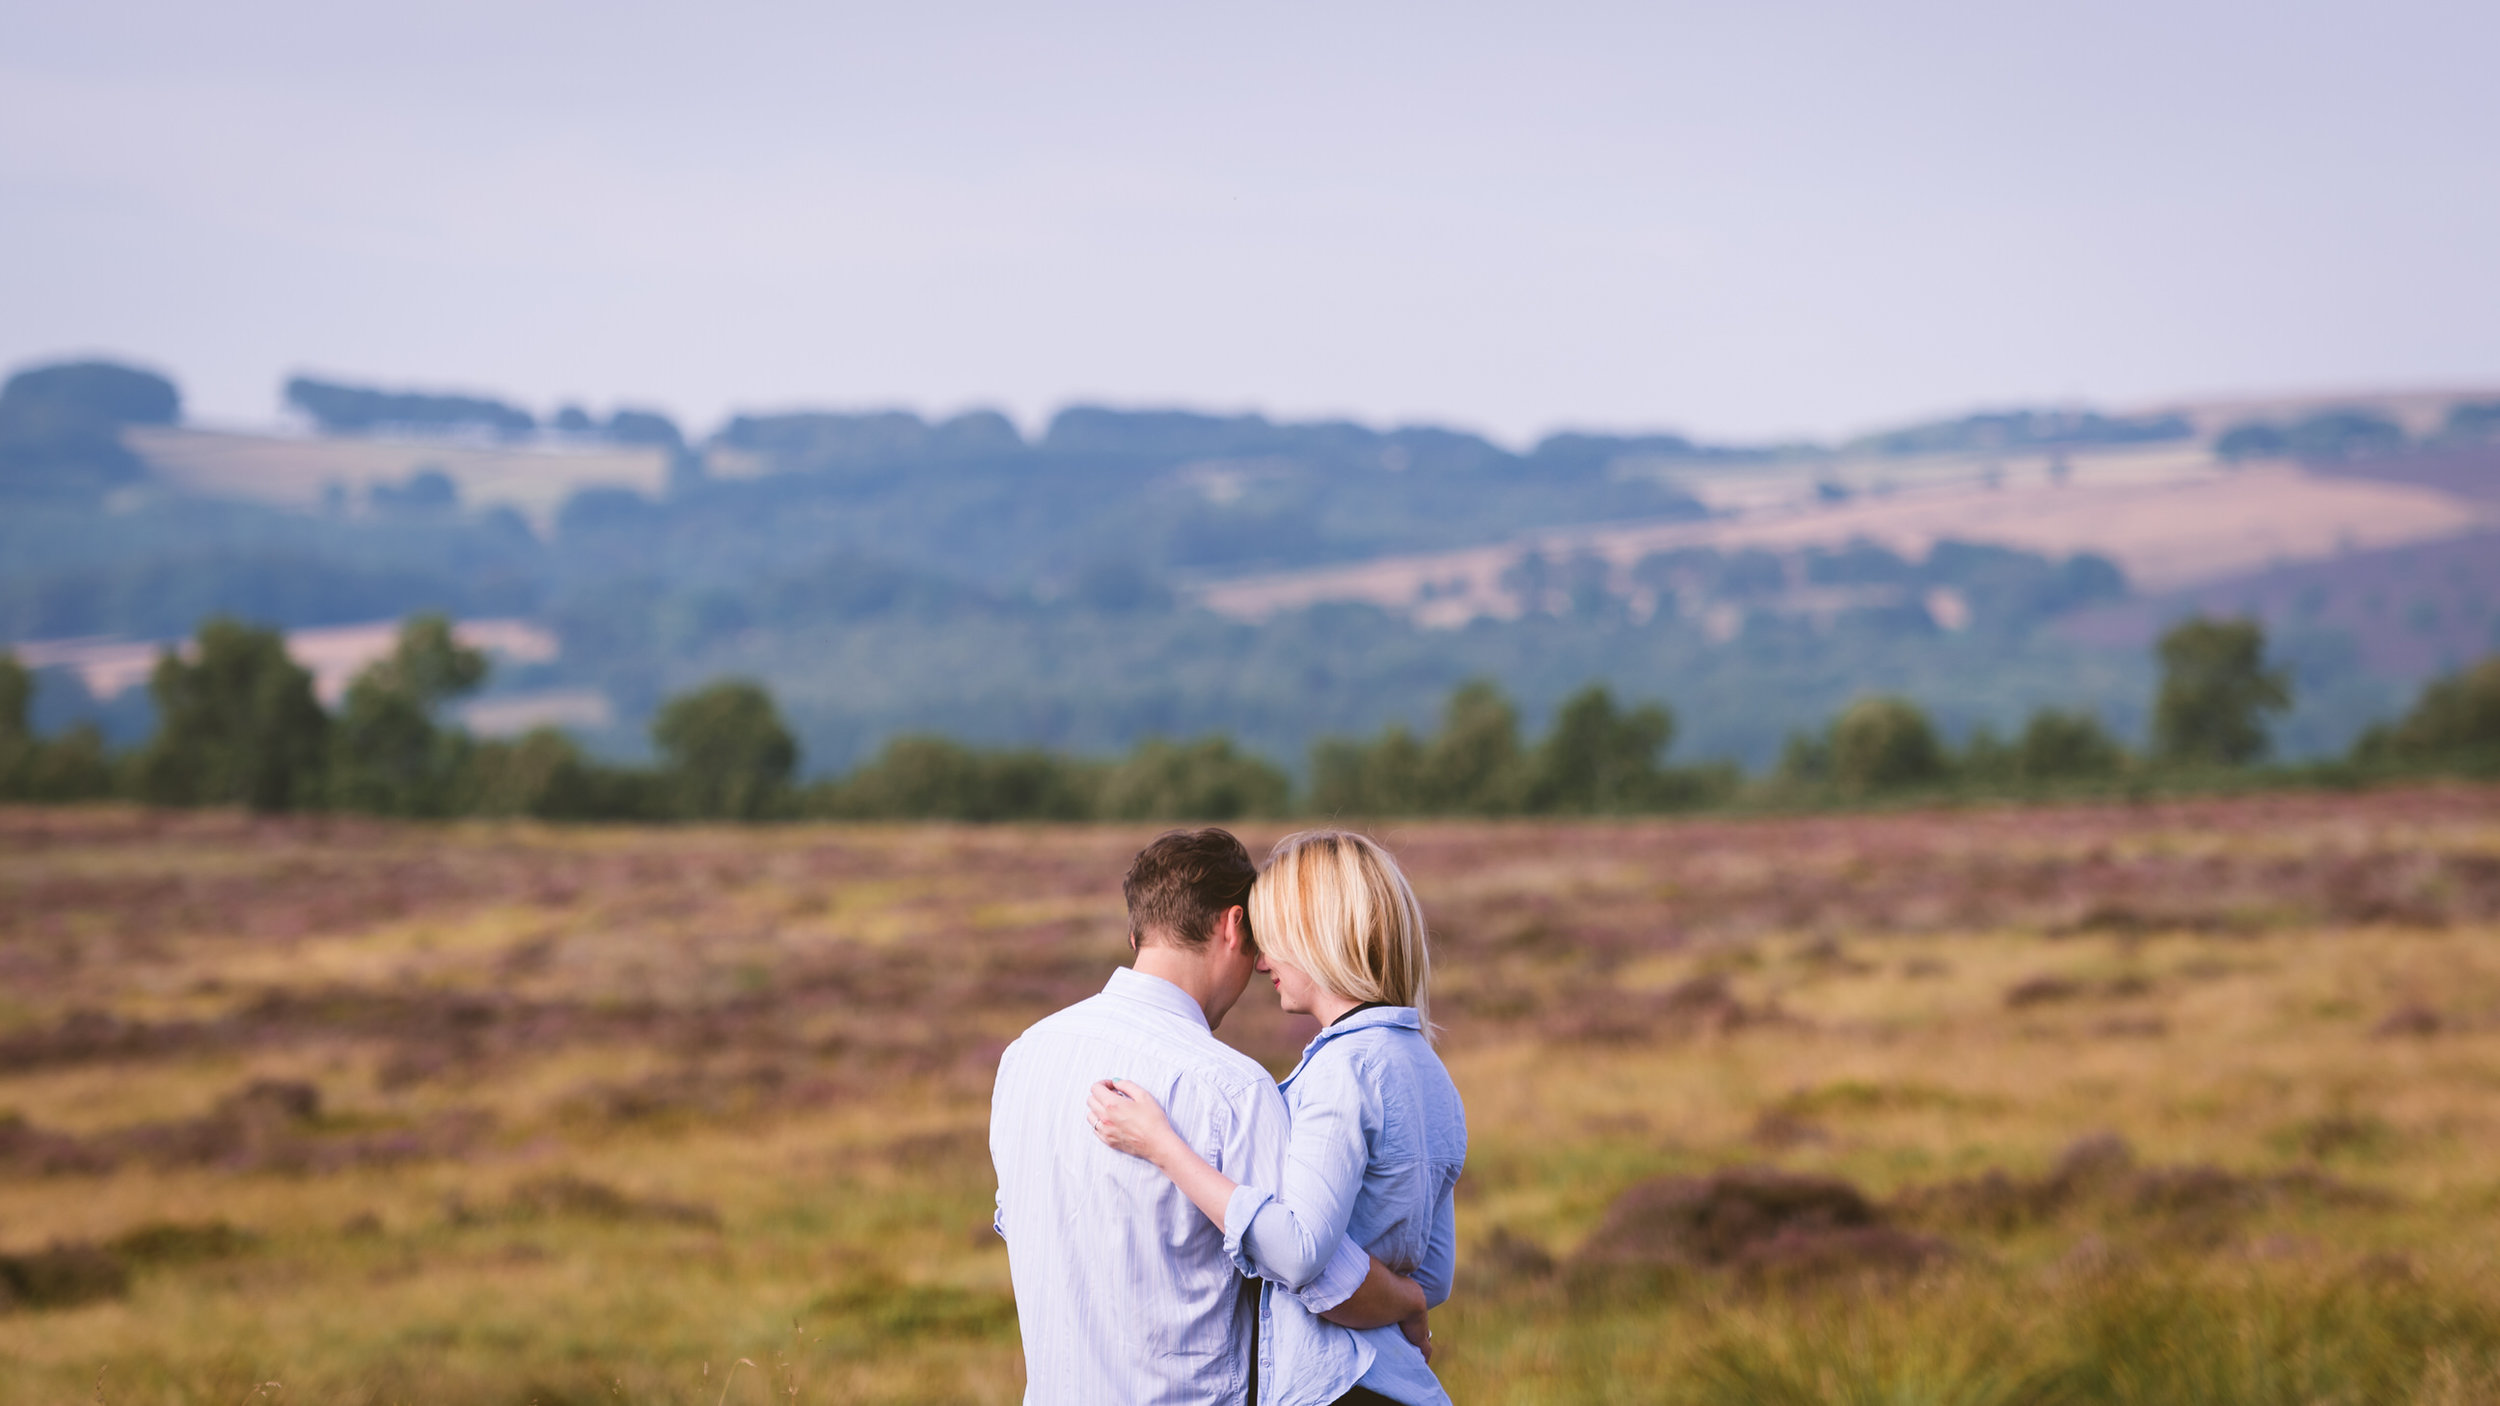 leeds-and-yorkshire-engagement-photographer-15.jpg